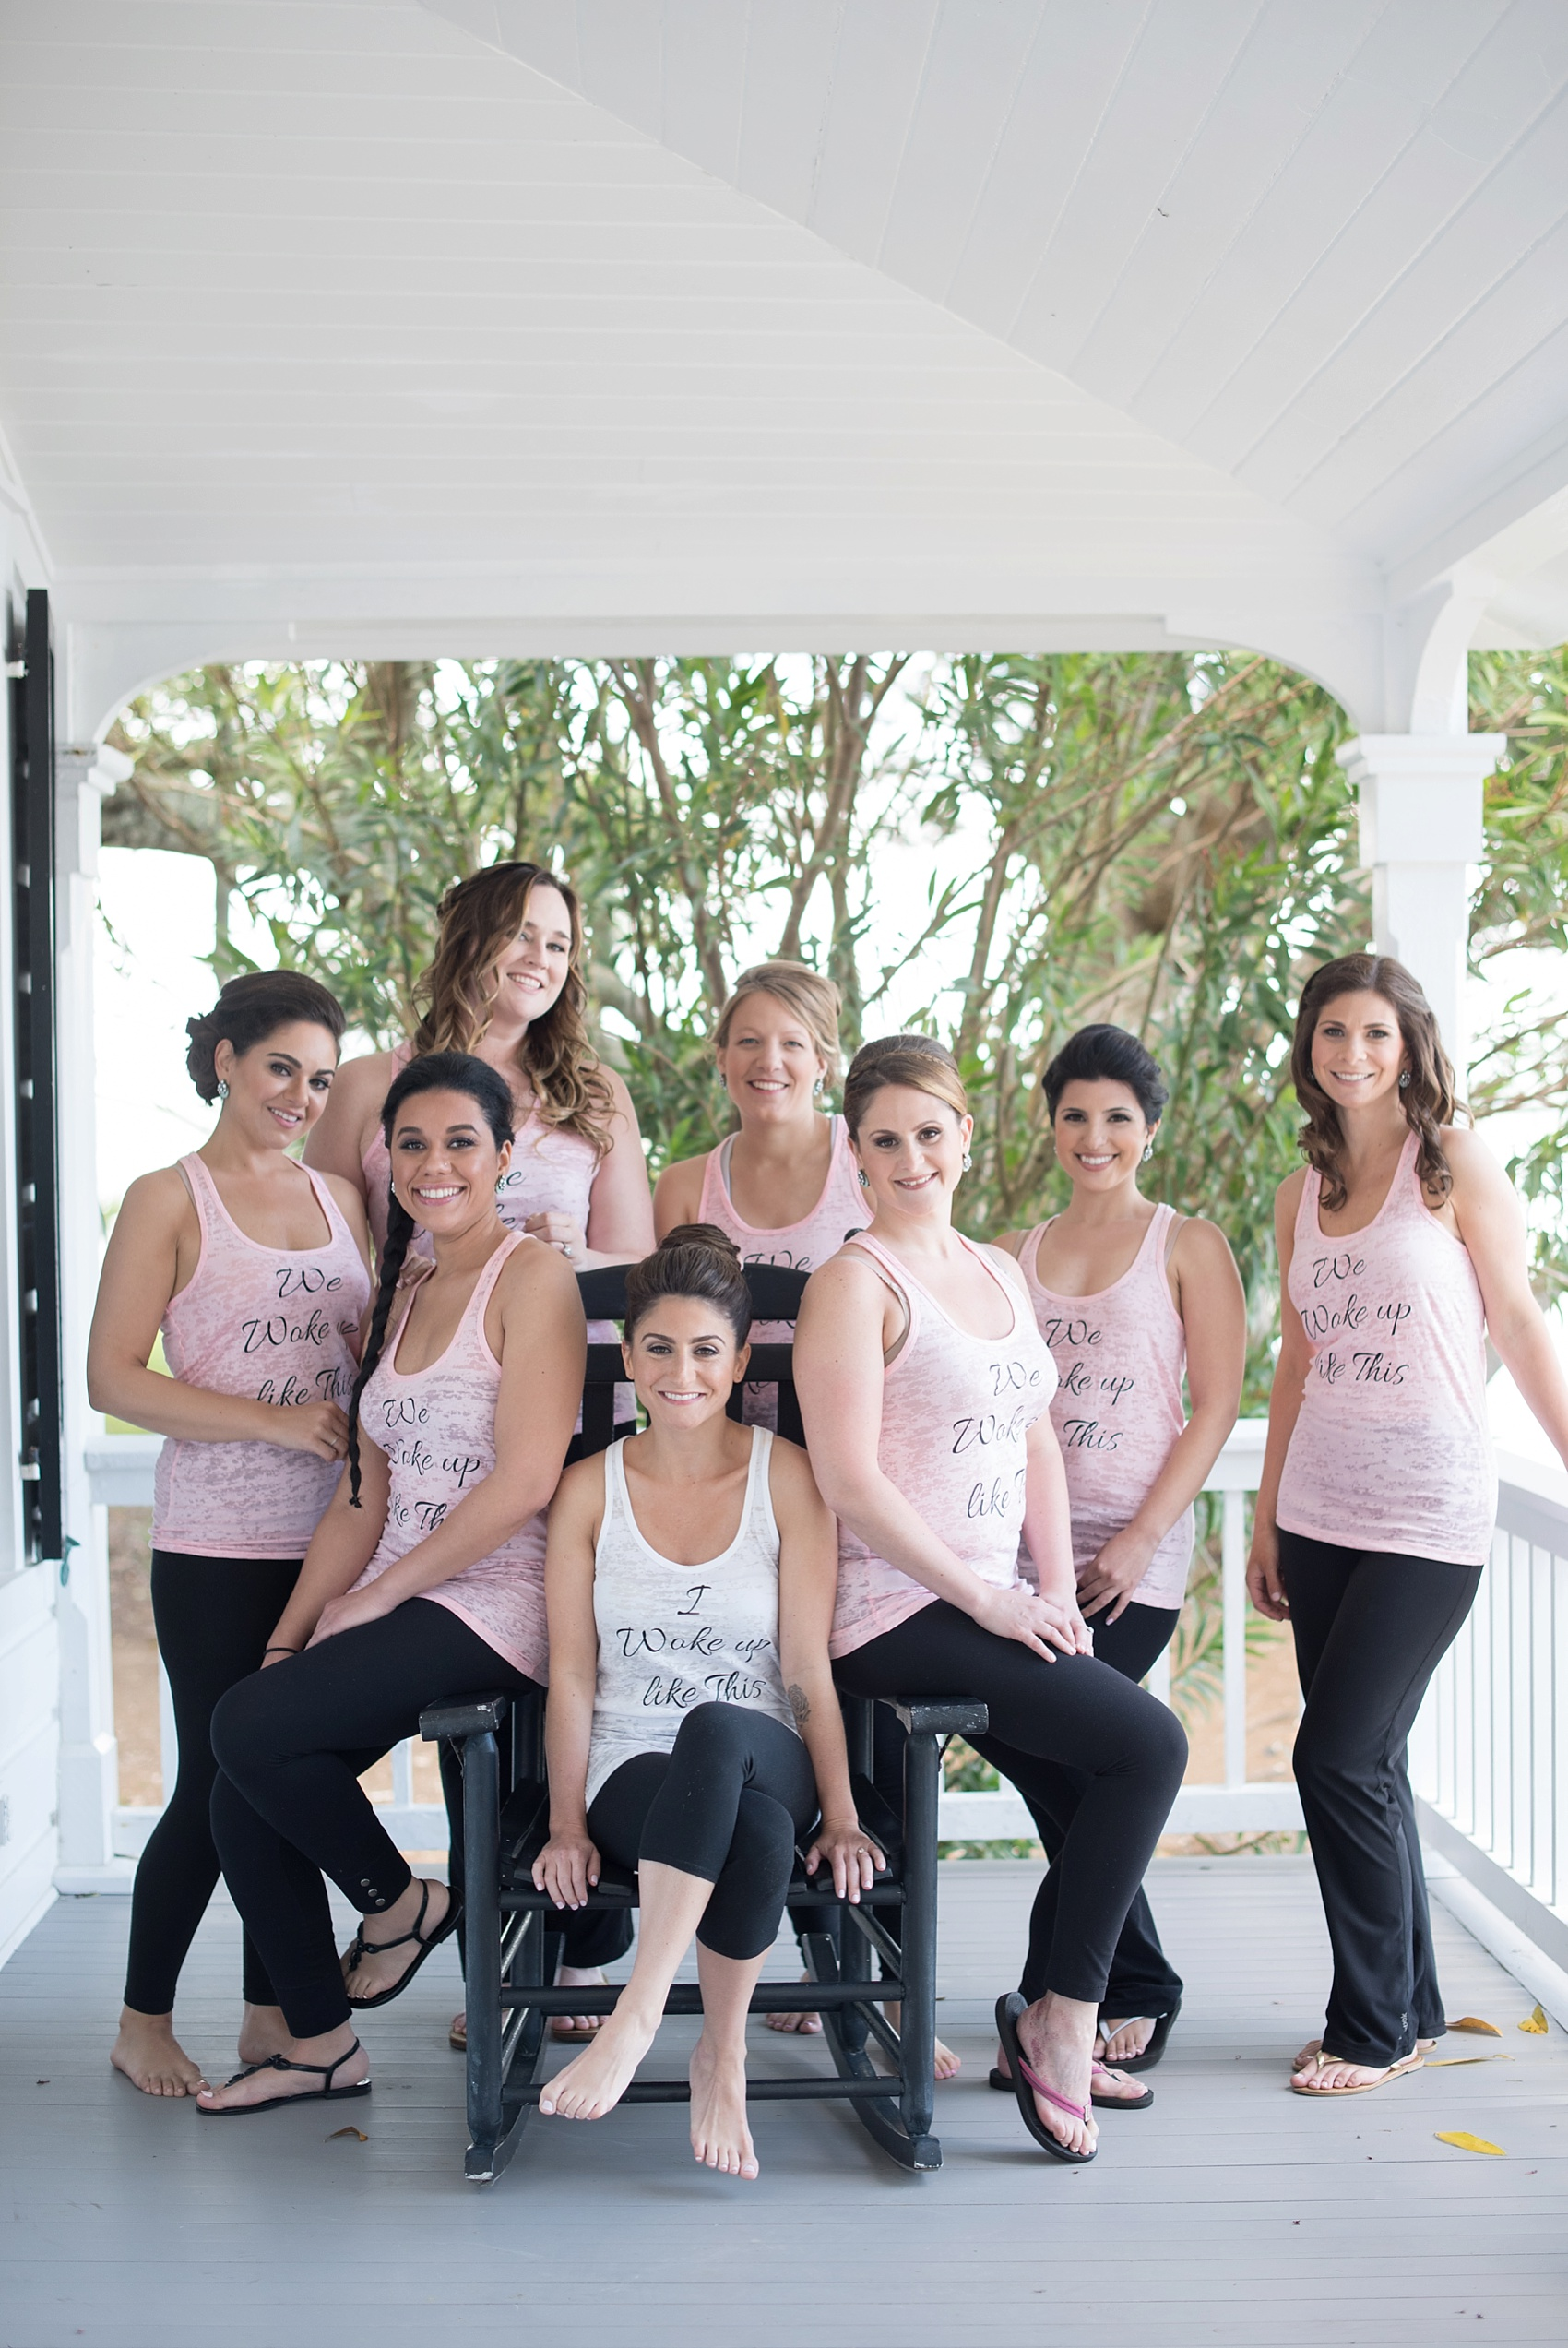 """""""I woke up like this"""" wedding day tank tops for the bridesmaids! Southern wedding in South Carolina. Photos by Mikkel Paige for a Hilton Head, Haig Point."""